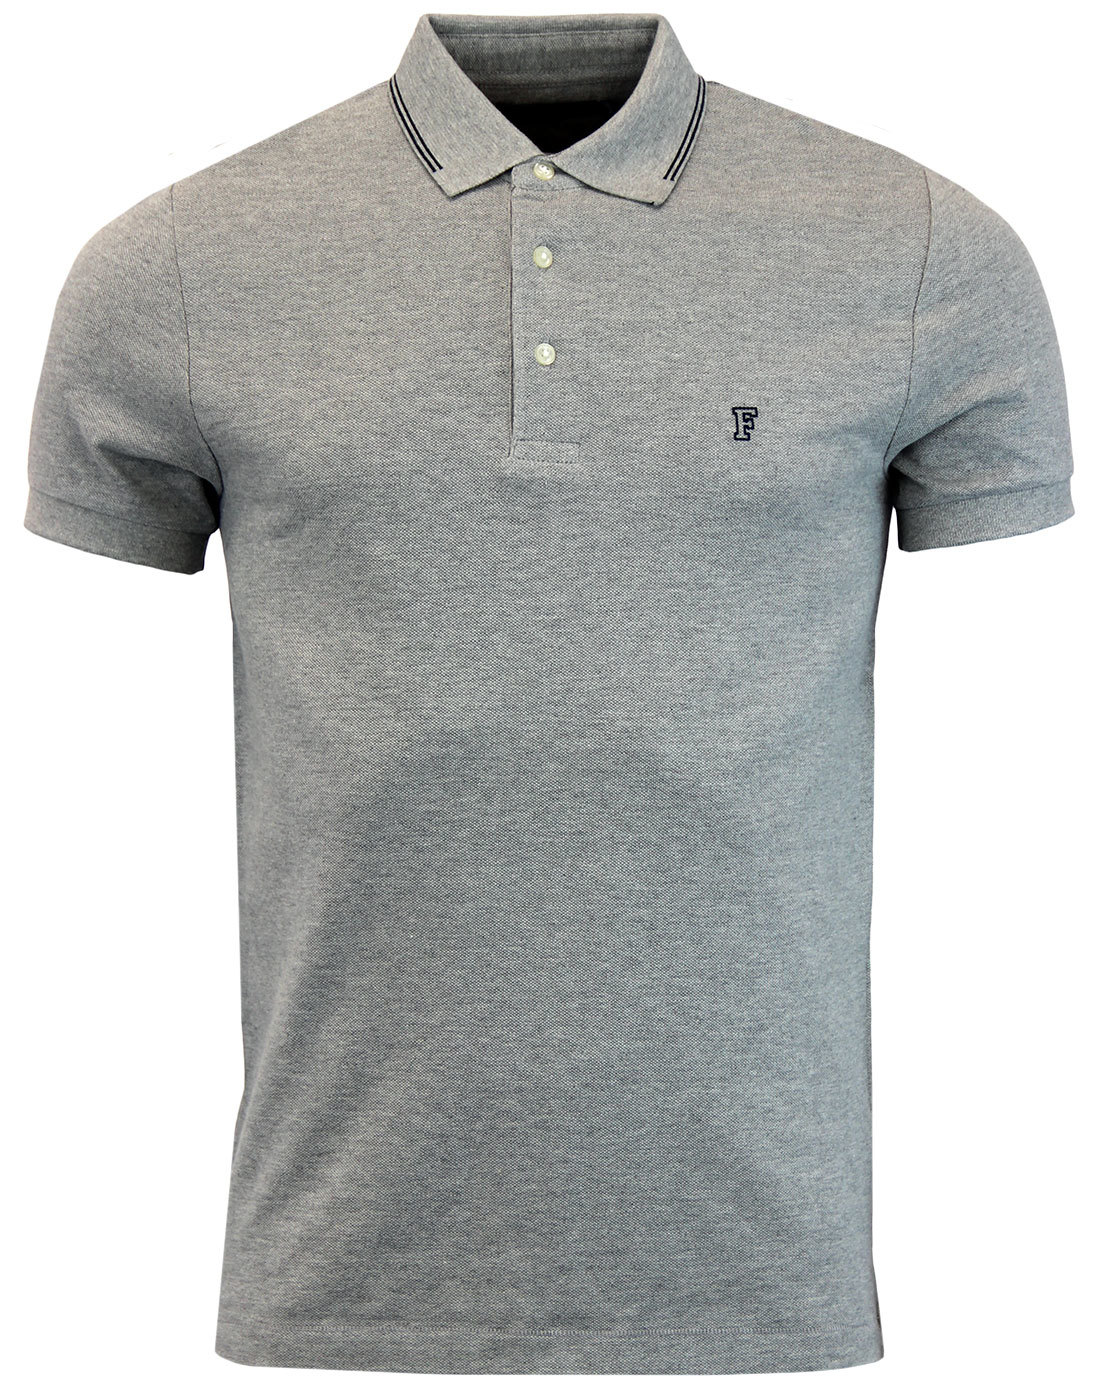 FRENCH CONNECTION Mod Twin Tip Pique Polo GREY